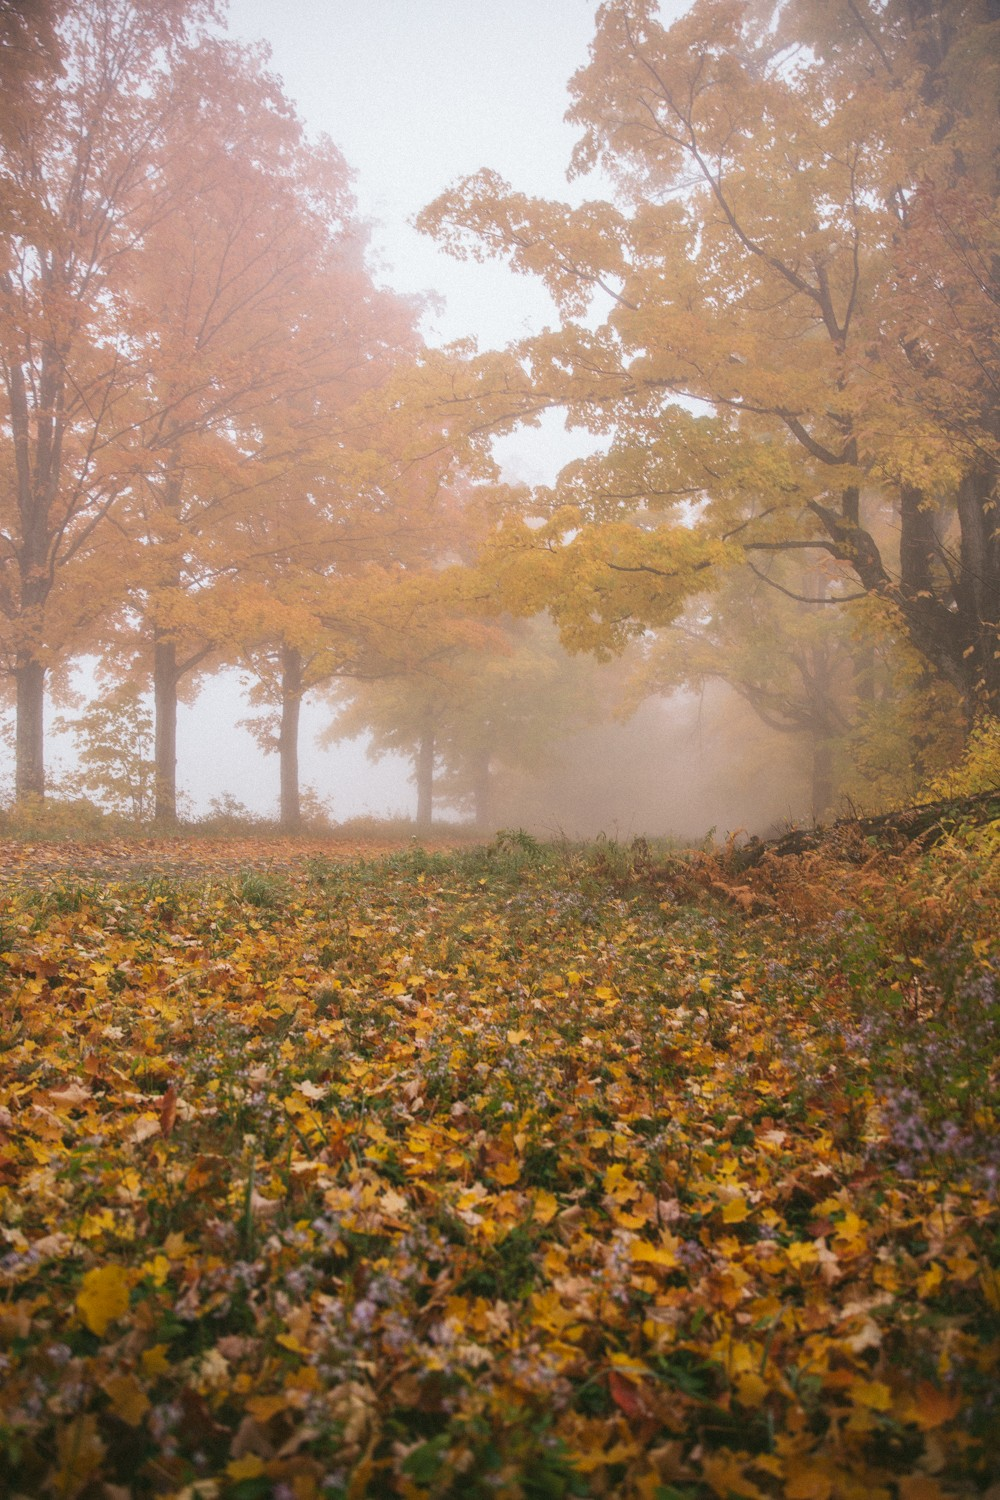 Misty walk in the fall foliage